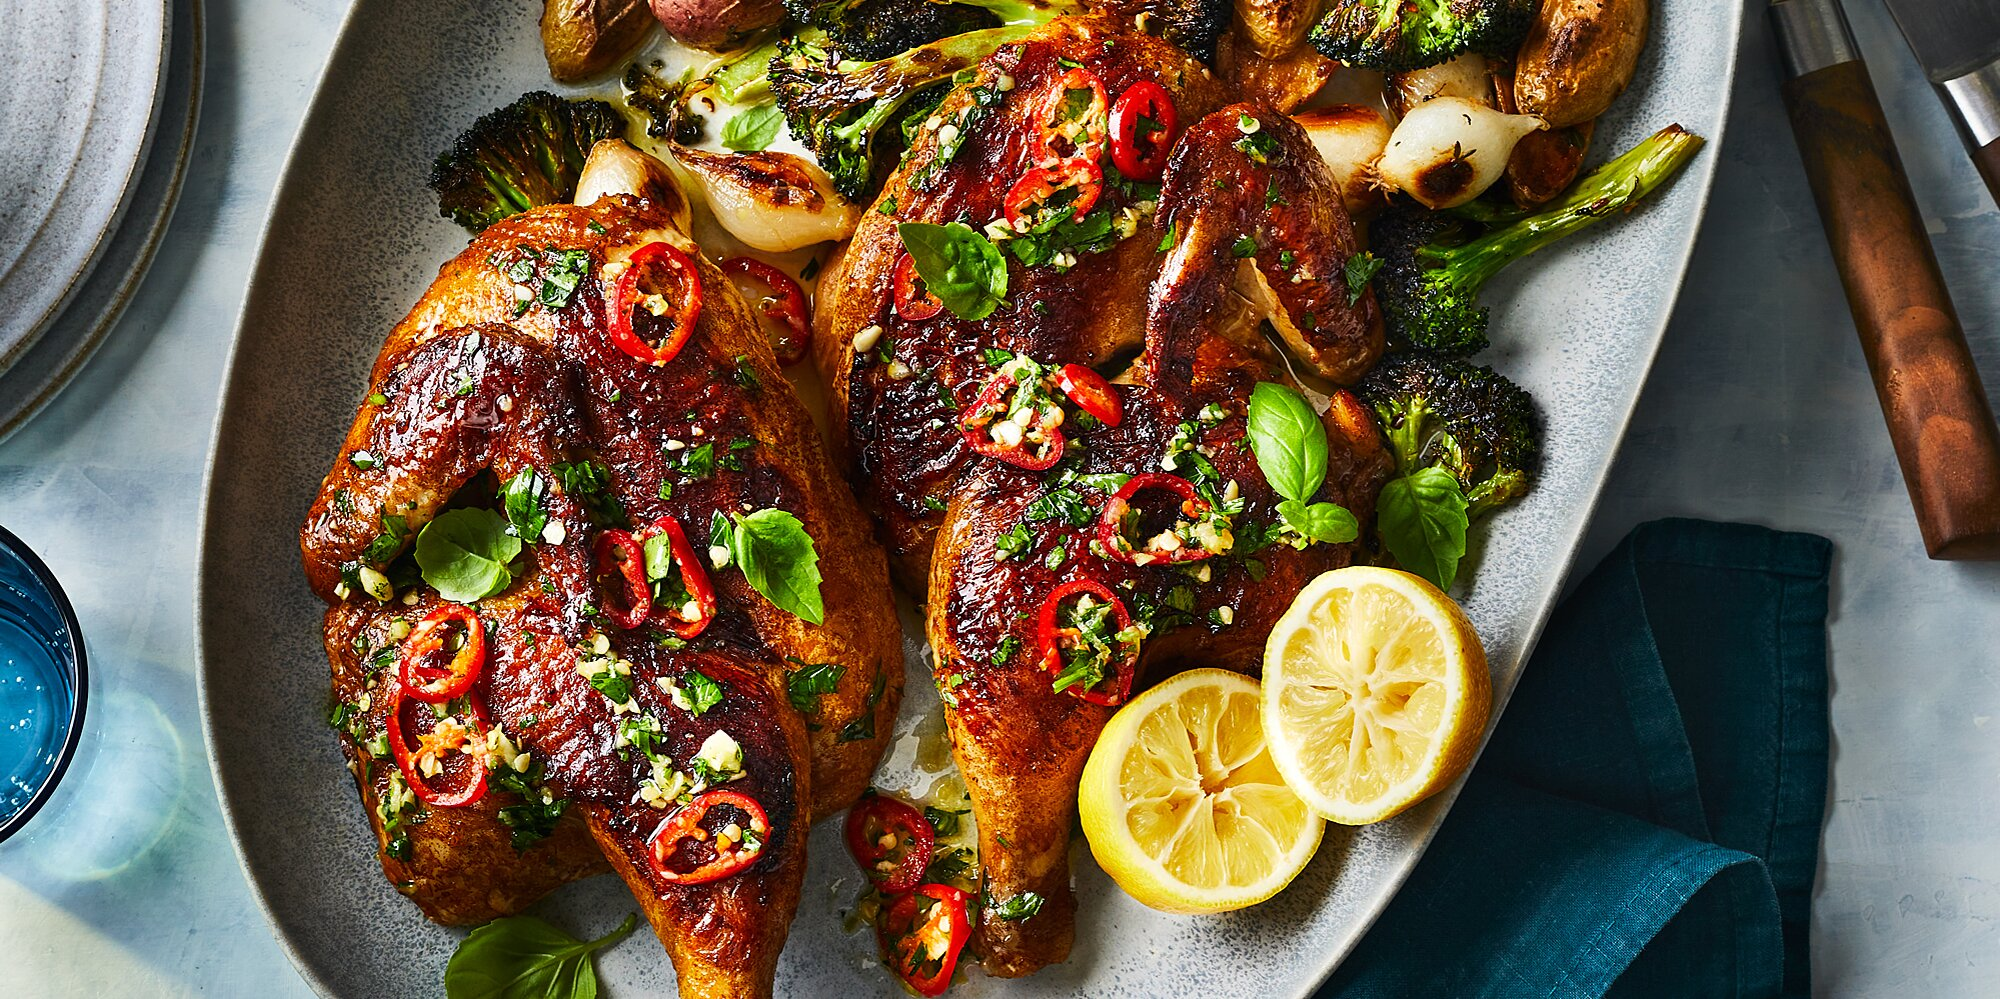 Roast Chicken with Chile-Basil Vinaigrette, Charred Broccoli, and Potatoes